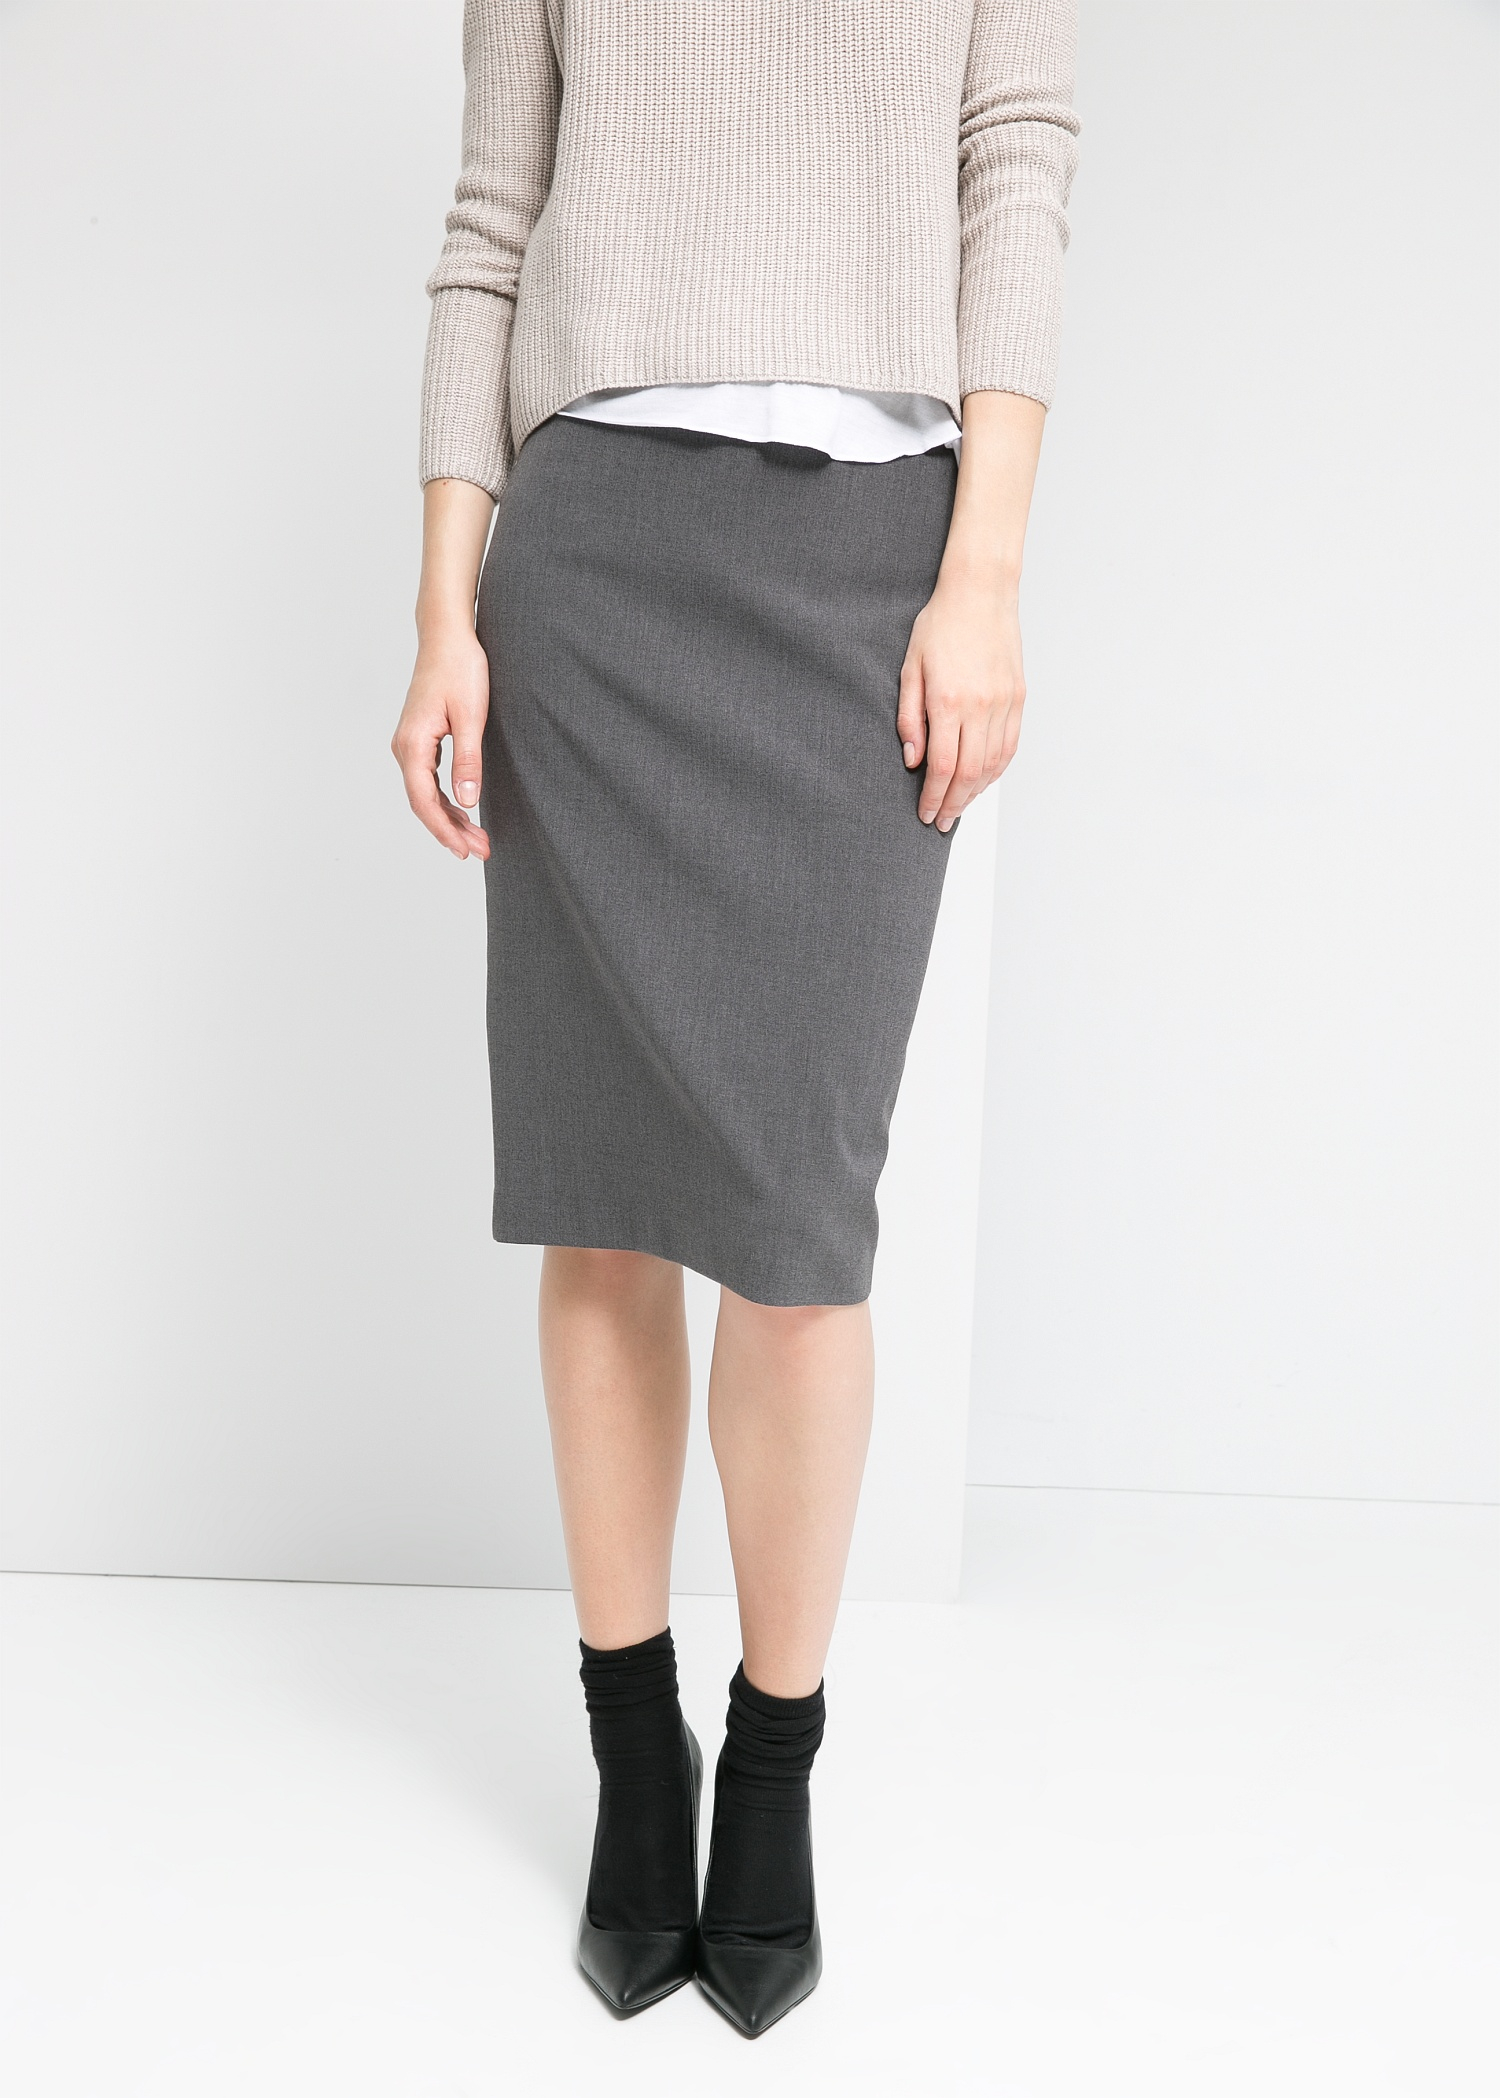 Gray Pencil Skirt - Skirts